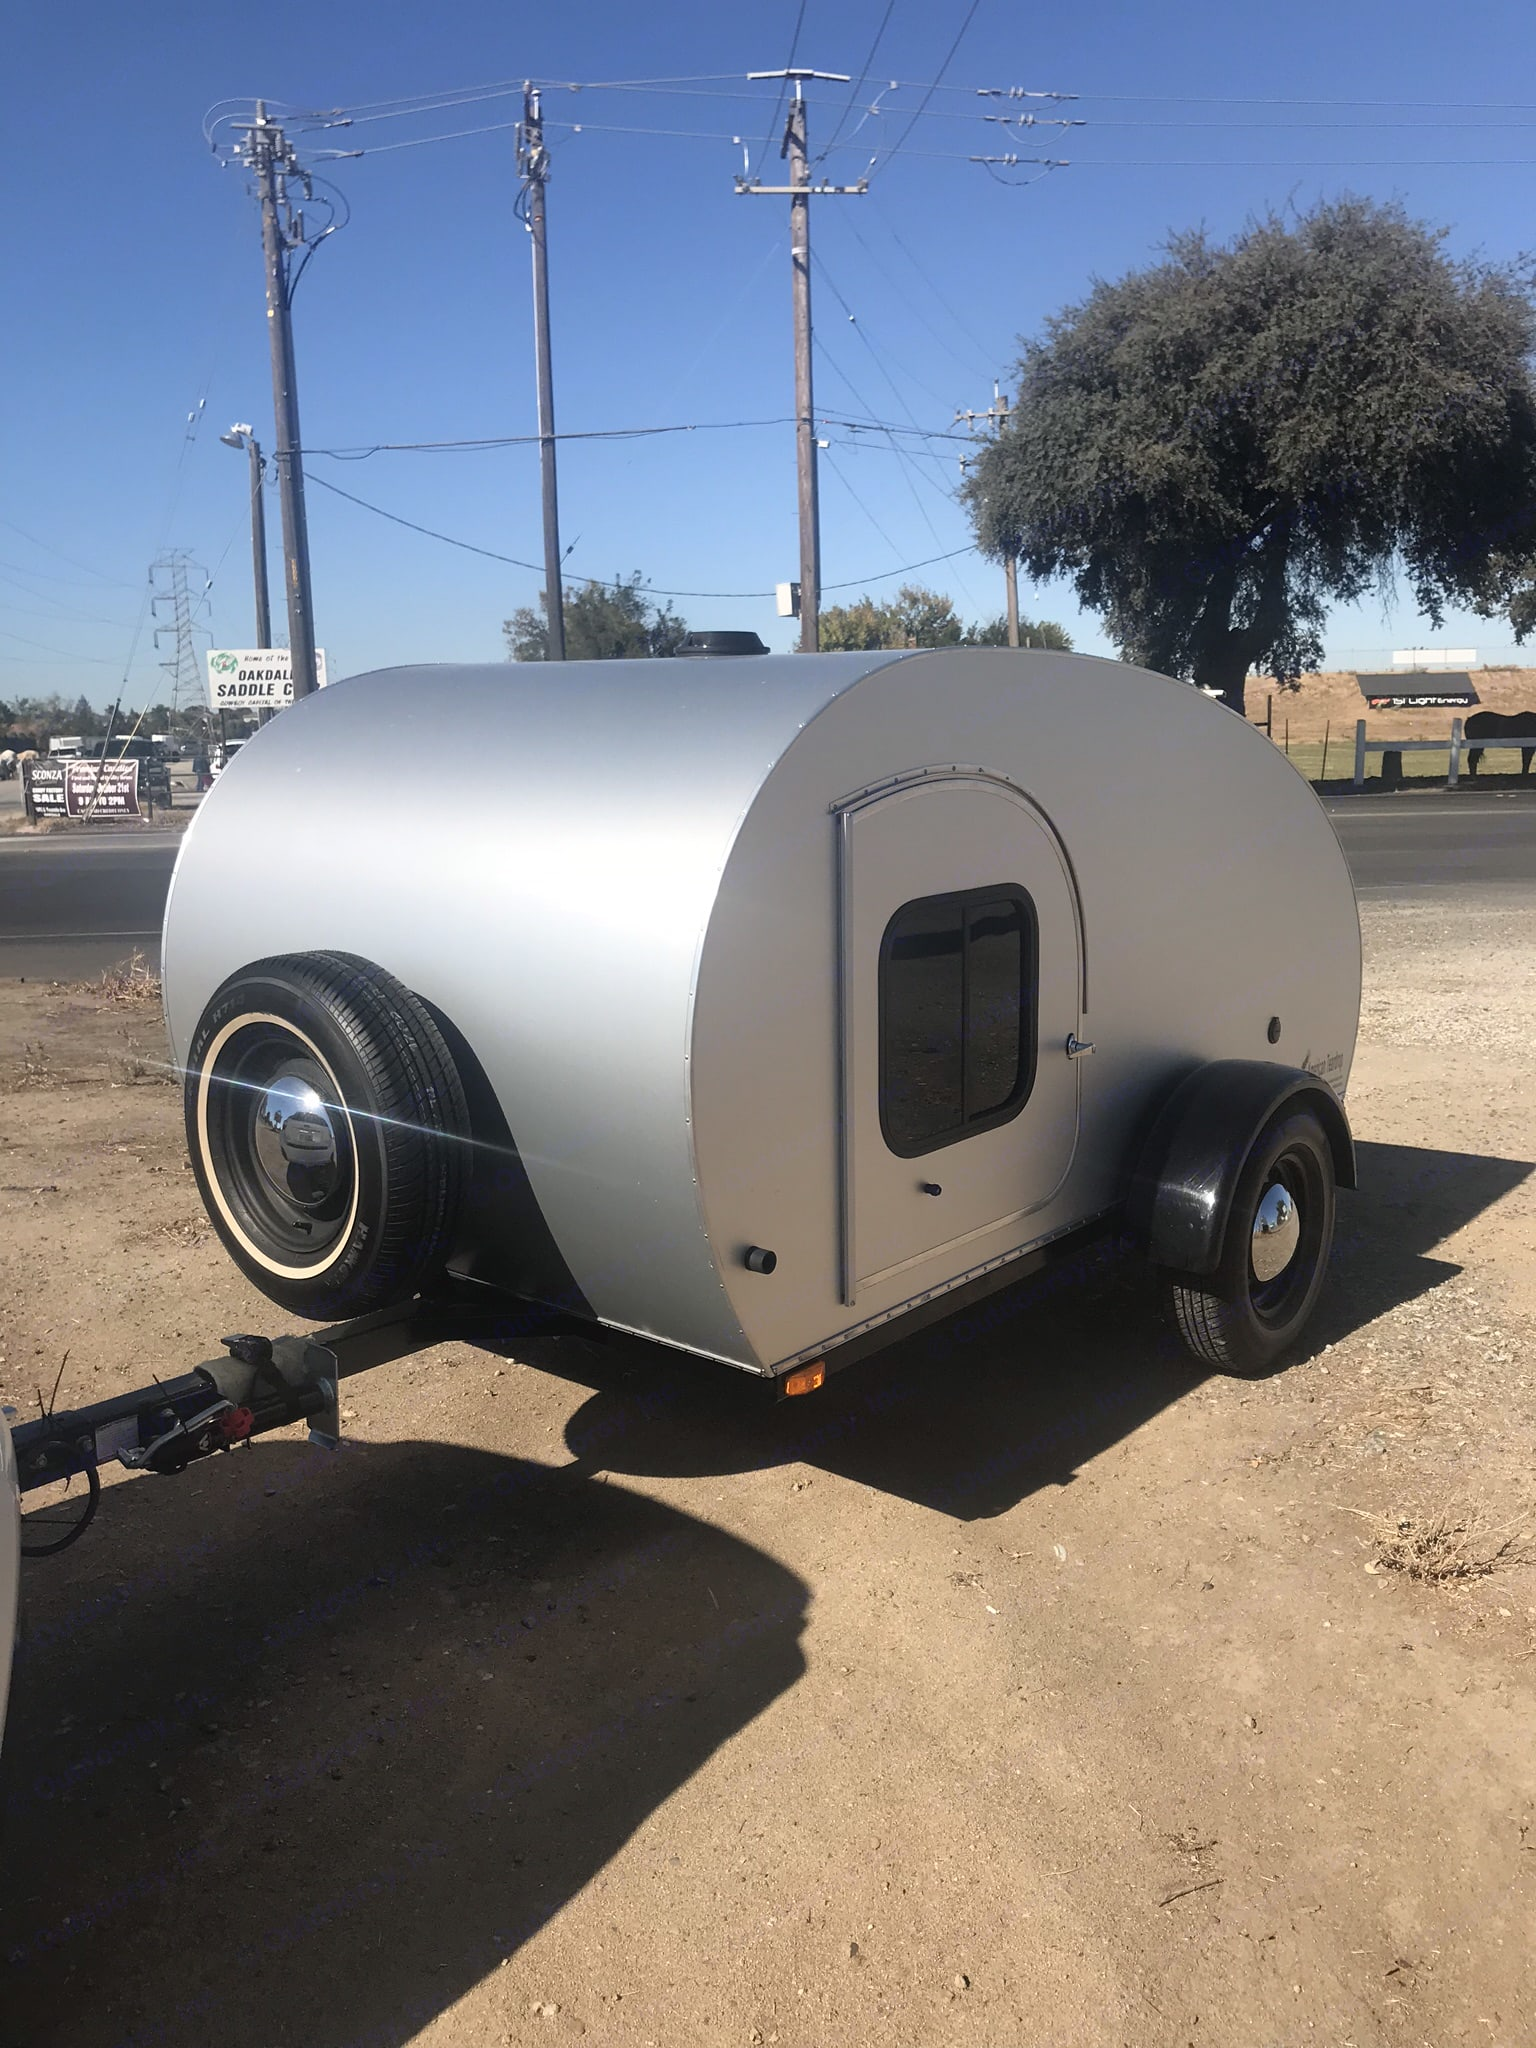 This camper has two side doors. One on each side. These doors open up to the bed area. . American Teardrop Travel Trailer 2009